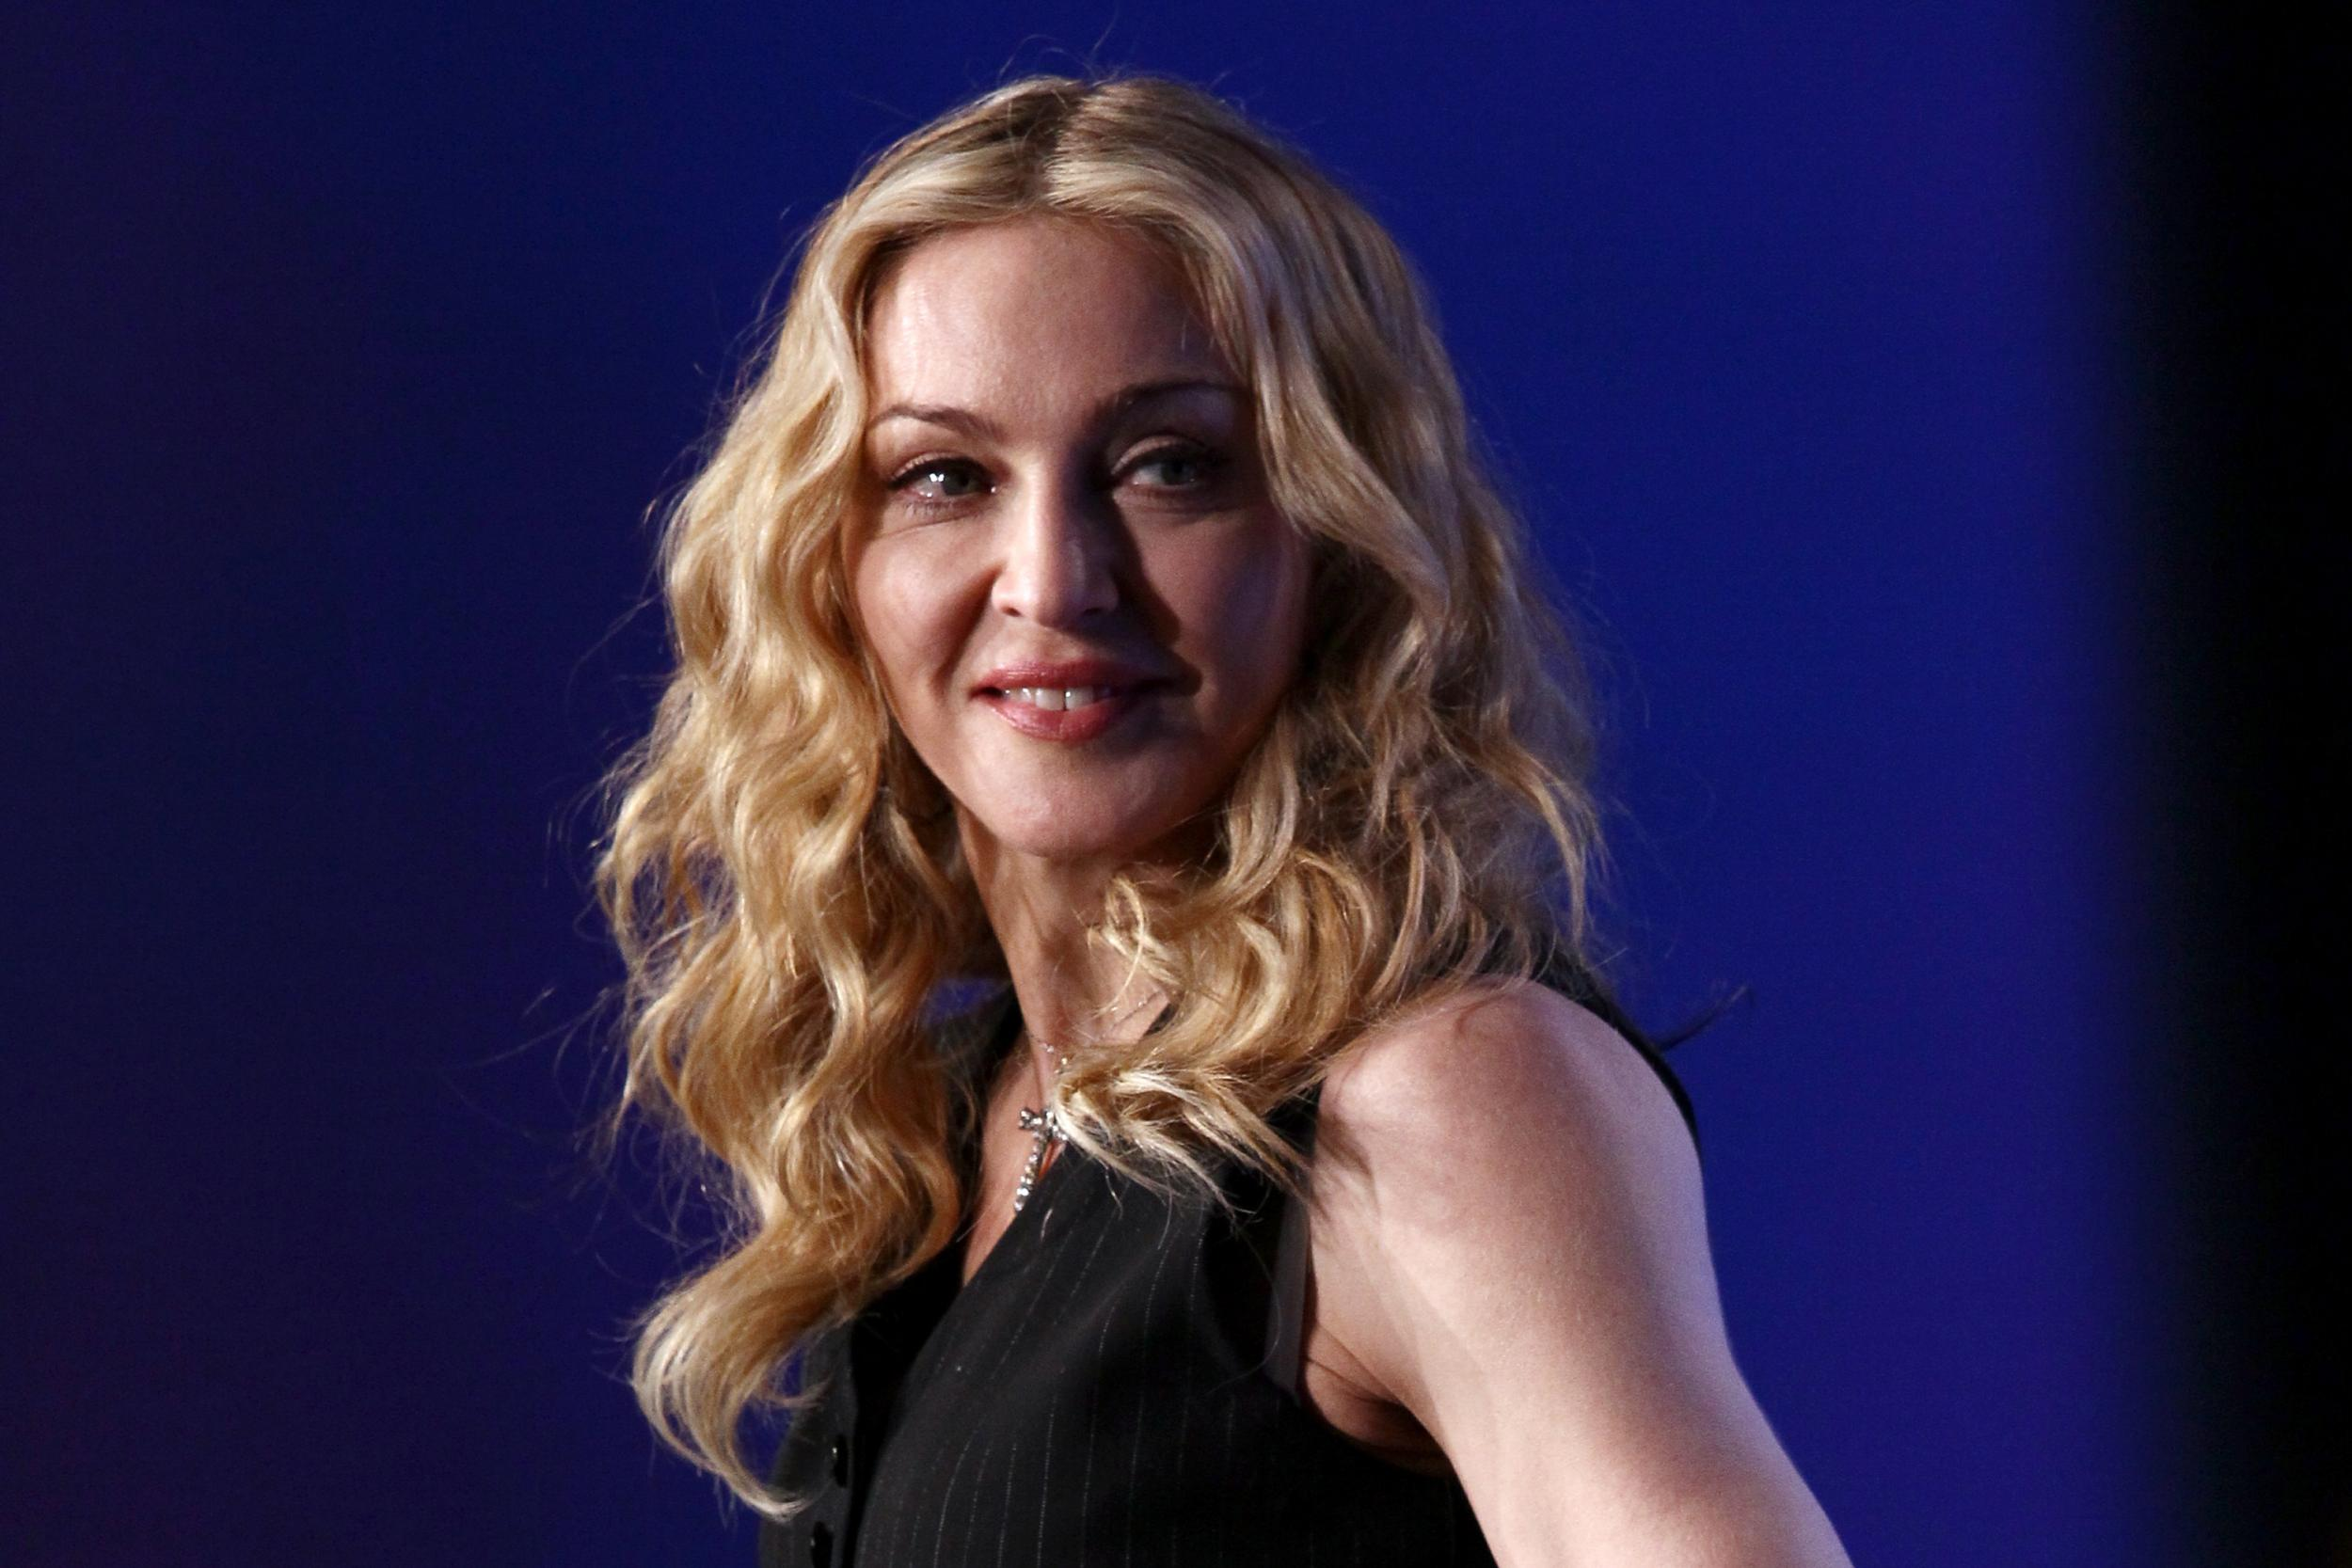 Madonna to perform at Eurovision Song Contest final in Israel